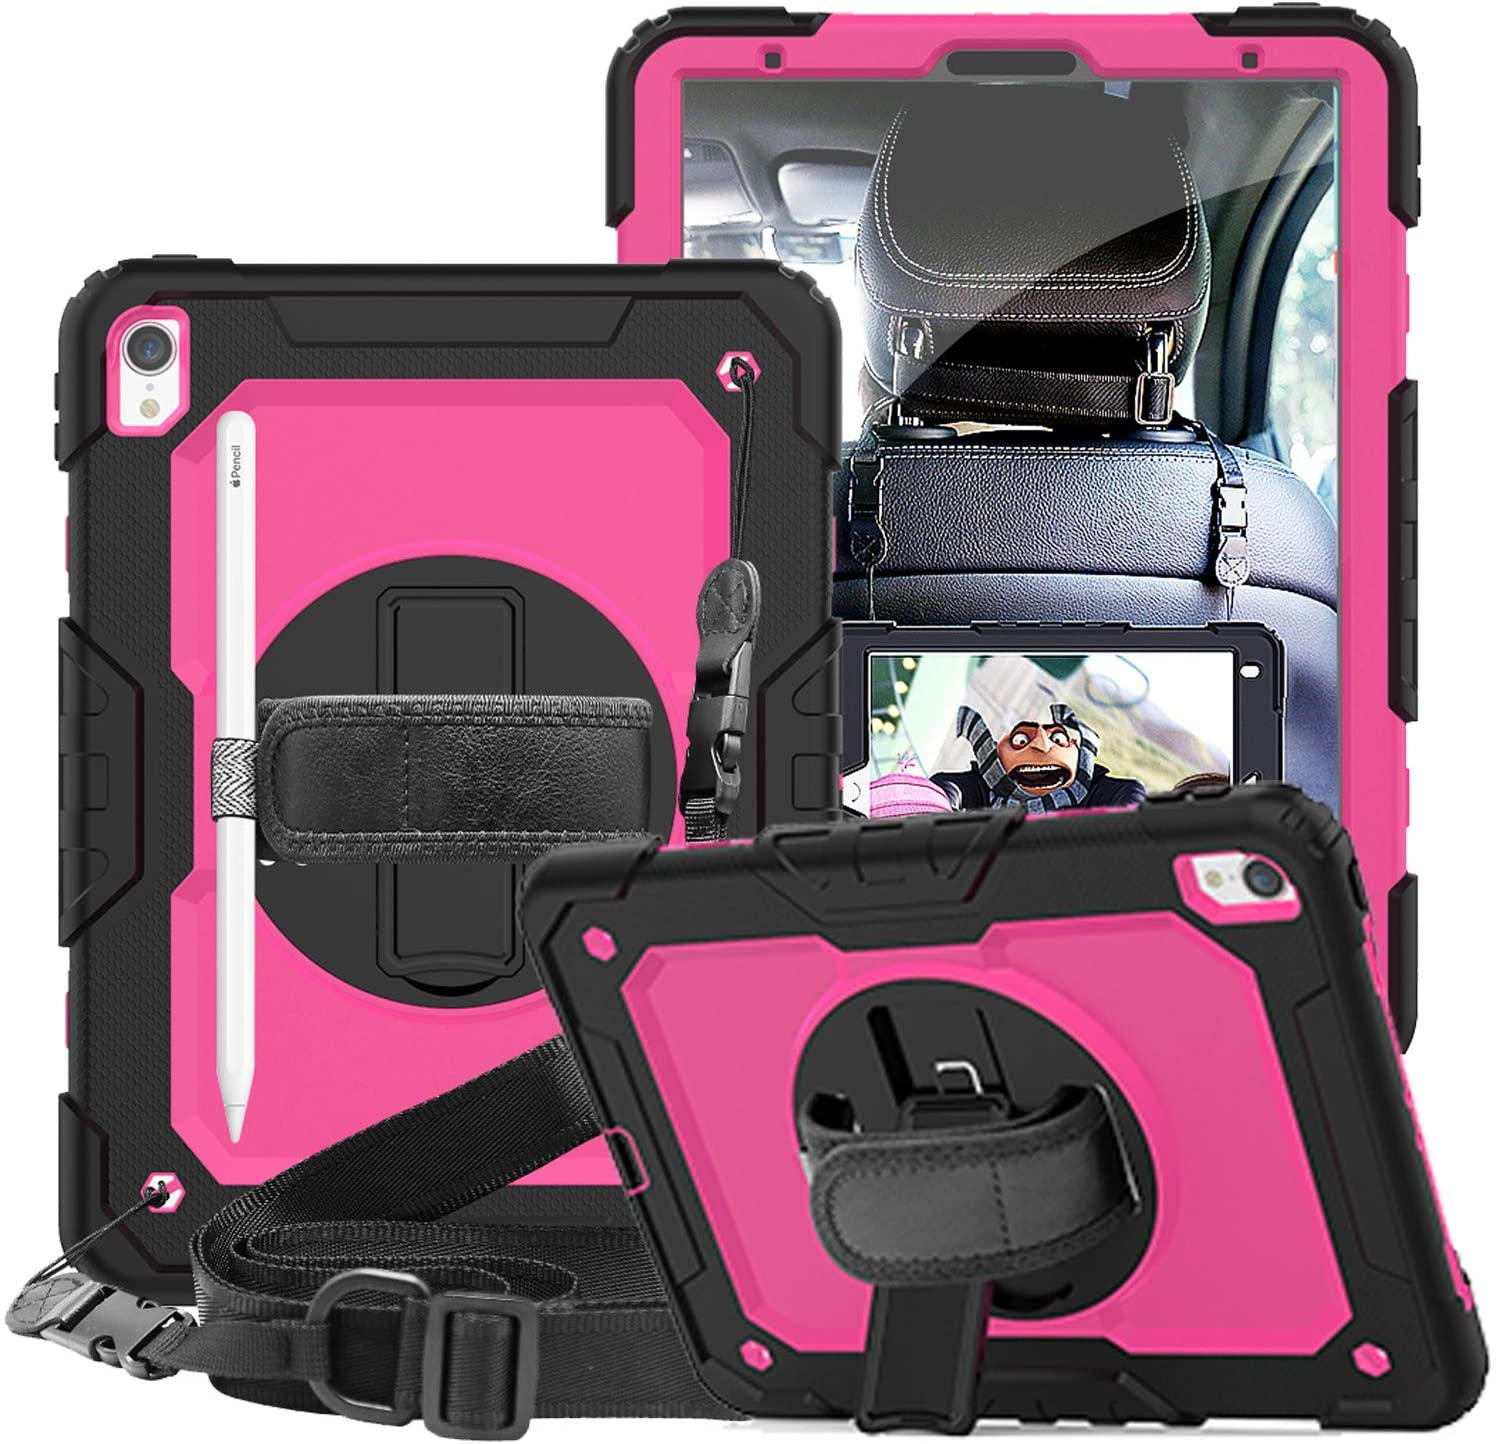 SUPSTRO iPad Pro 11 Case 2018 with Pencil Holder,Built-in Kickstand,Elastic Hand Strap and Shoulder Strap,Full Body Shockproof Protective Case for iPad Pro 11 inch 2018 Pink